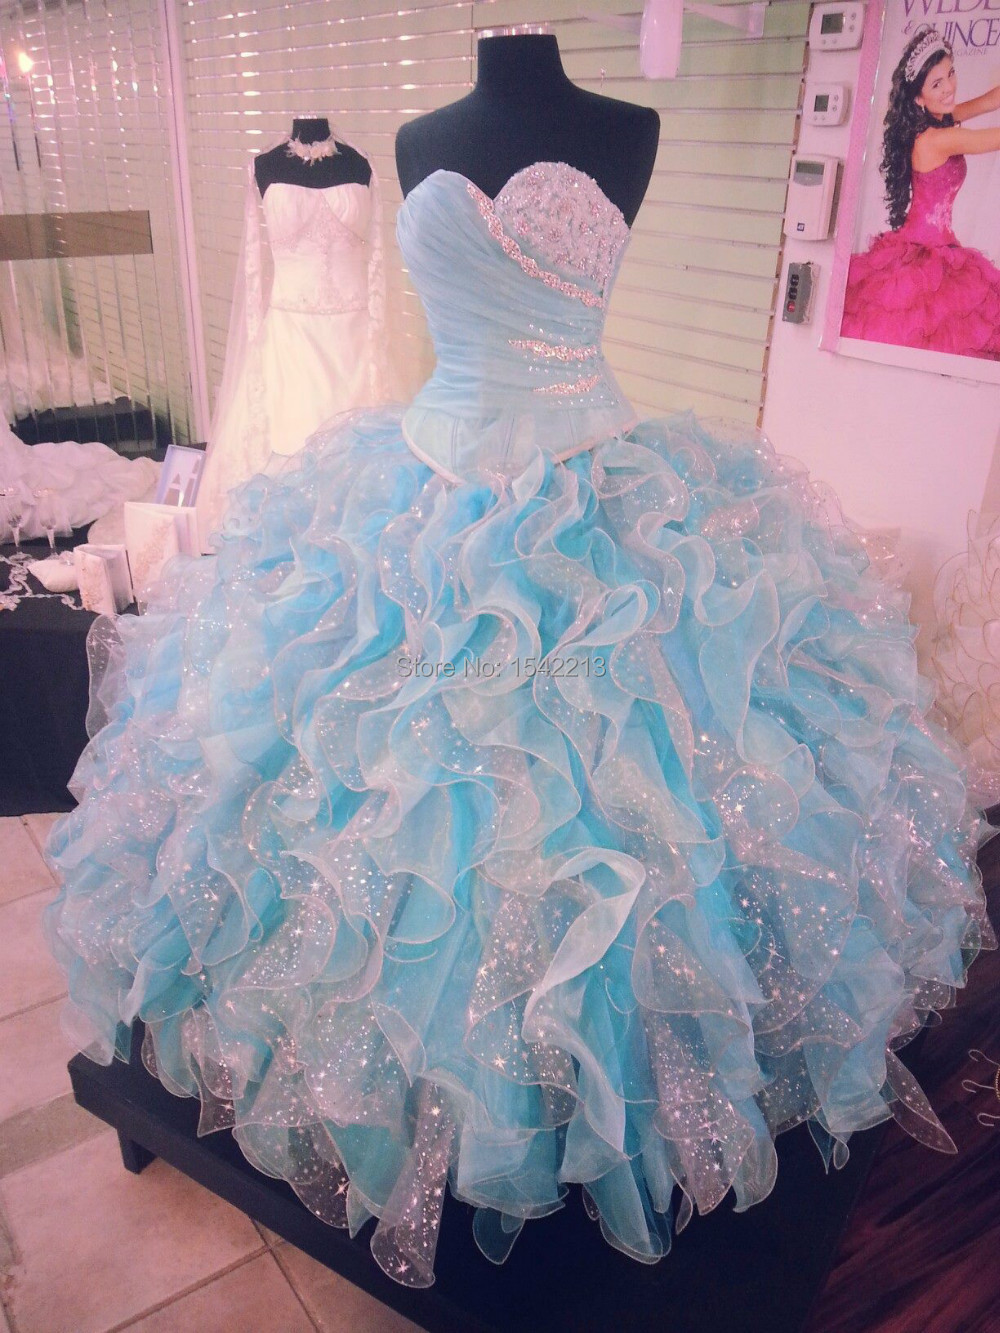 Light Blue And White Ball Gown Dress Sweetheart Long Vestidos De Quinceanera Dresses New Fashion 2015(China (Mainland))